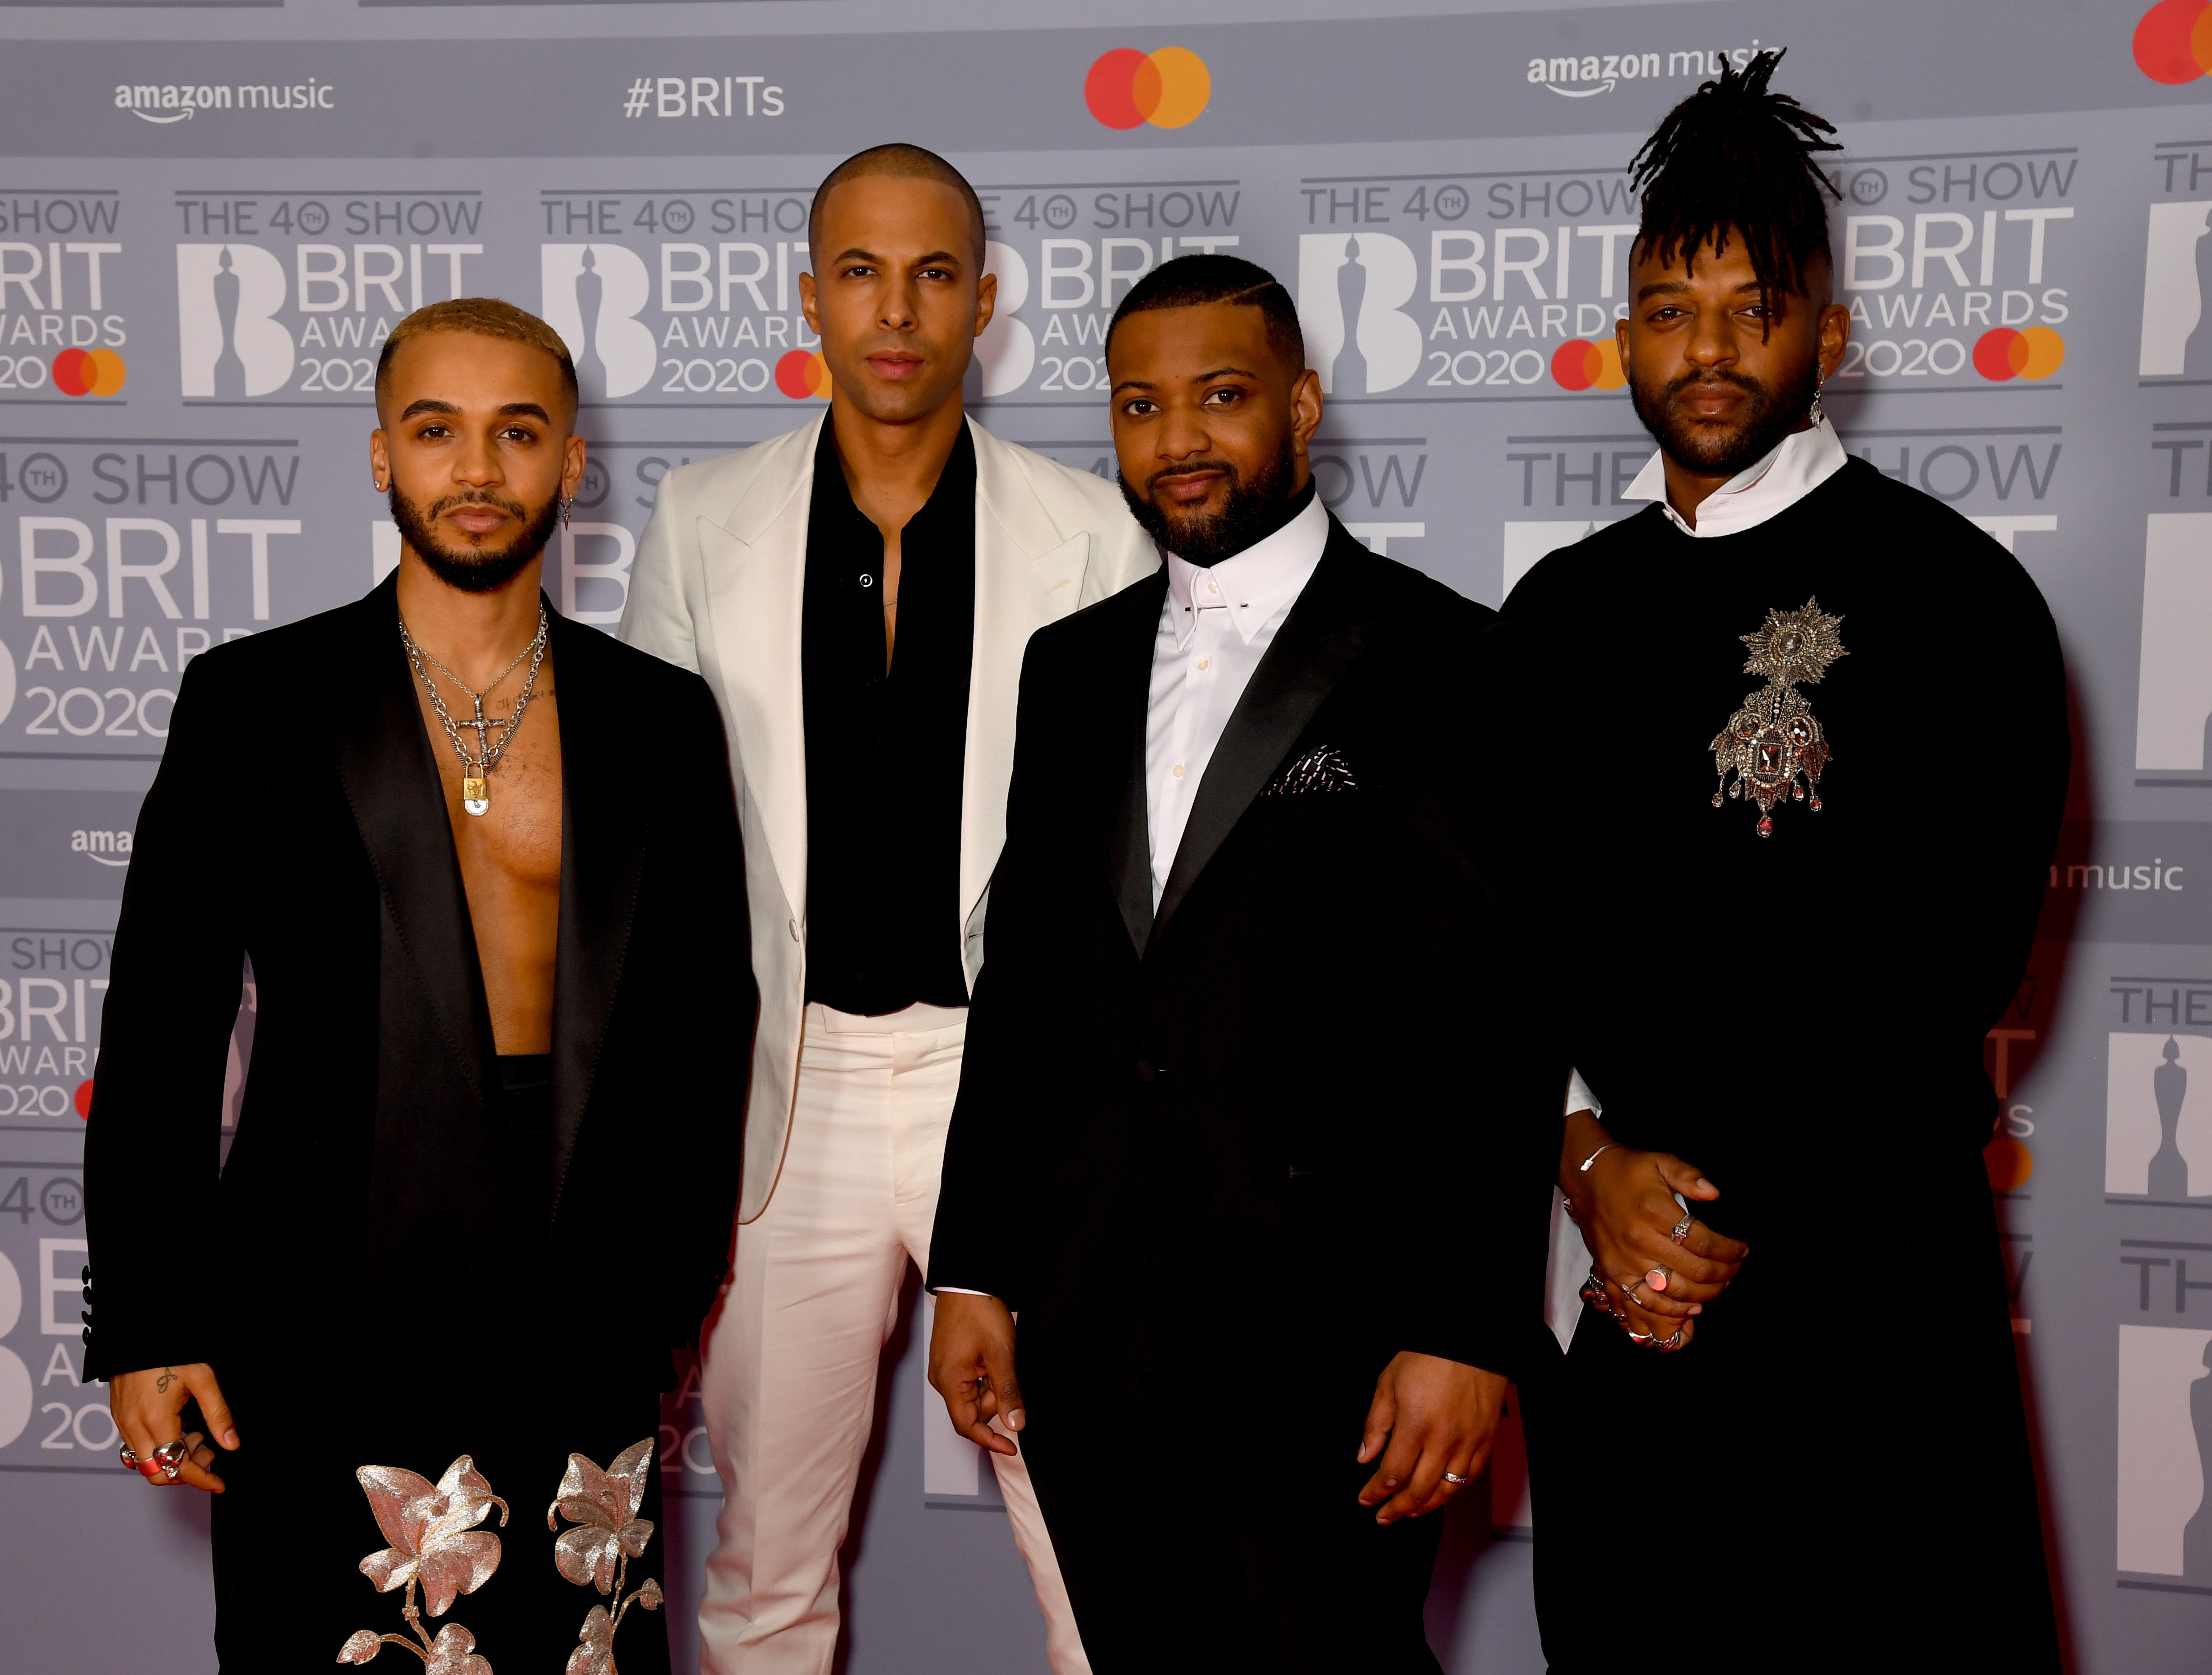 (L to R) Aston Merrygold, Marvin Humes, JB Gill and Oritse Williams of JLS attend The BRIT Awards 2020 at The O2 Arena on February 18, 2020 in London, England. (Photo by Dave J Hogan/Getty Images)